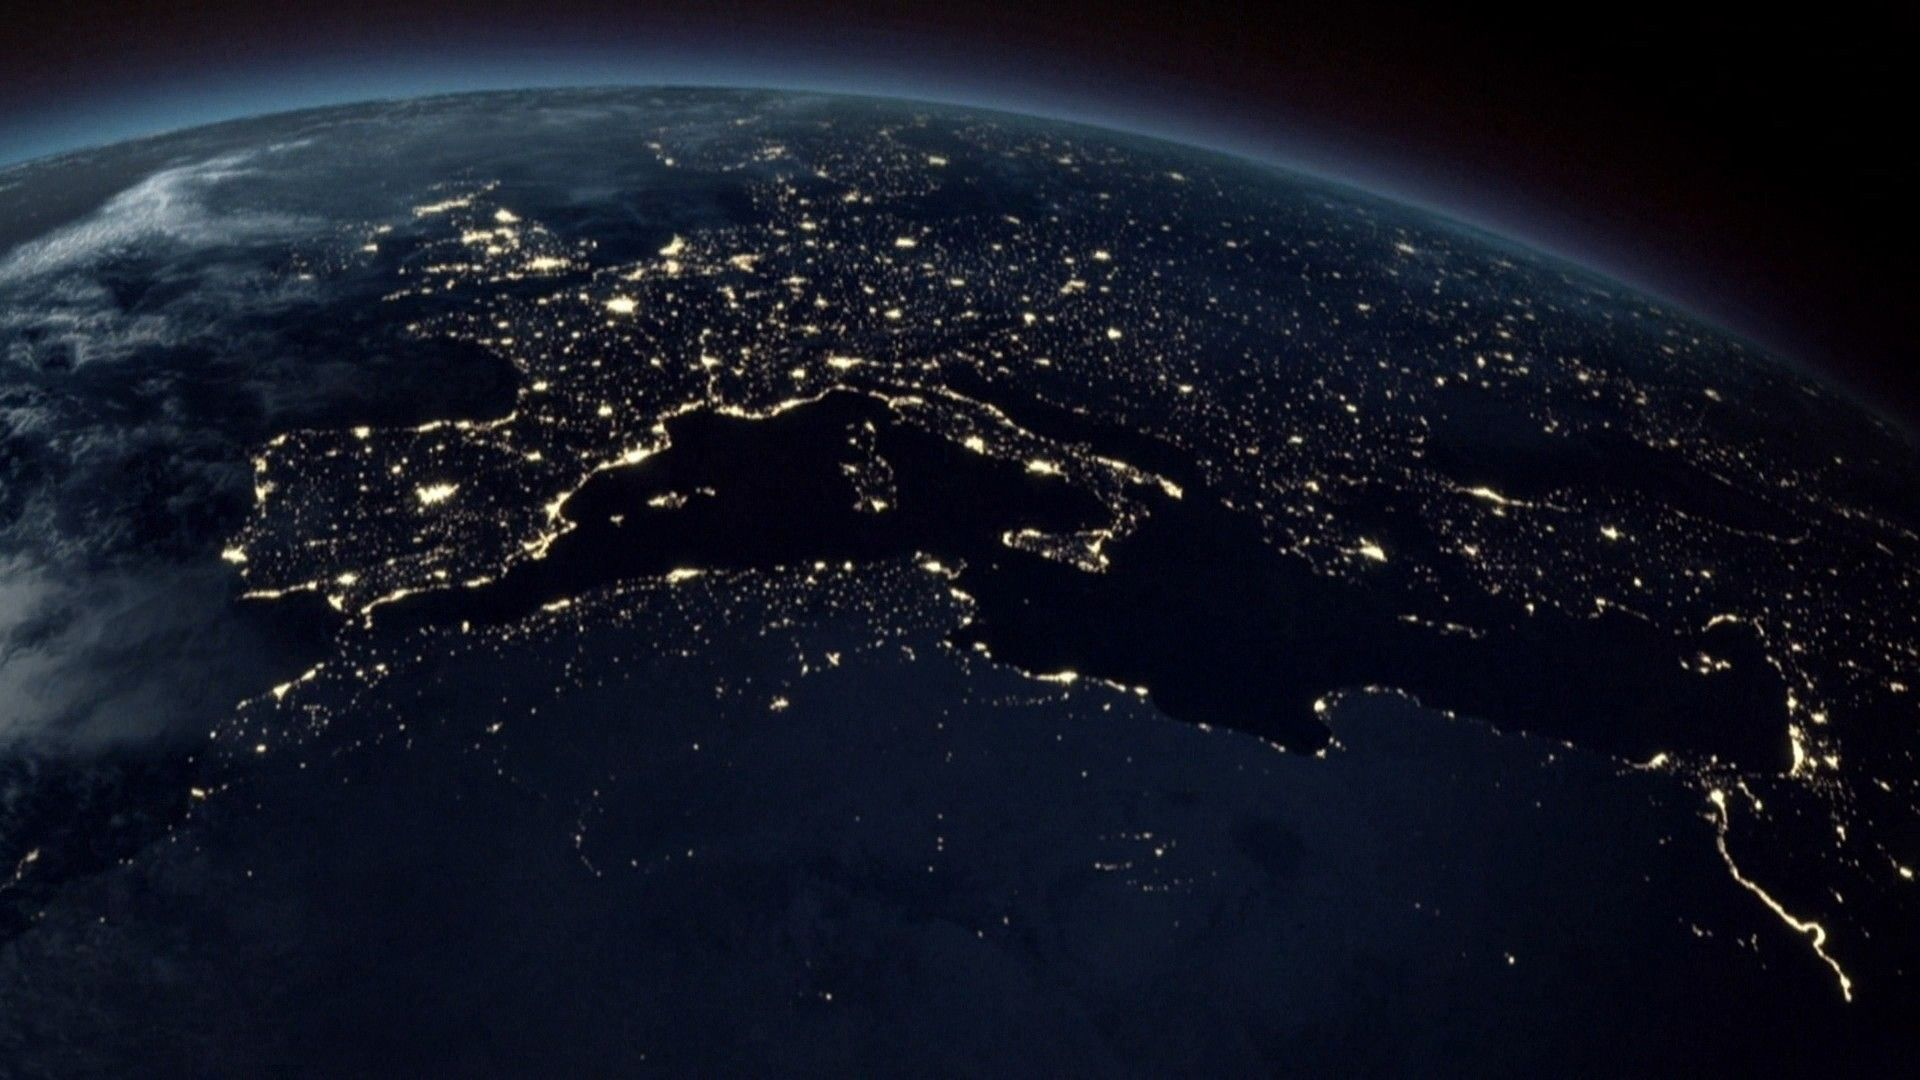 Earth from space hd astronomy earth at night from space - Earth hd images from space ...